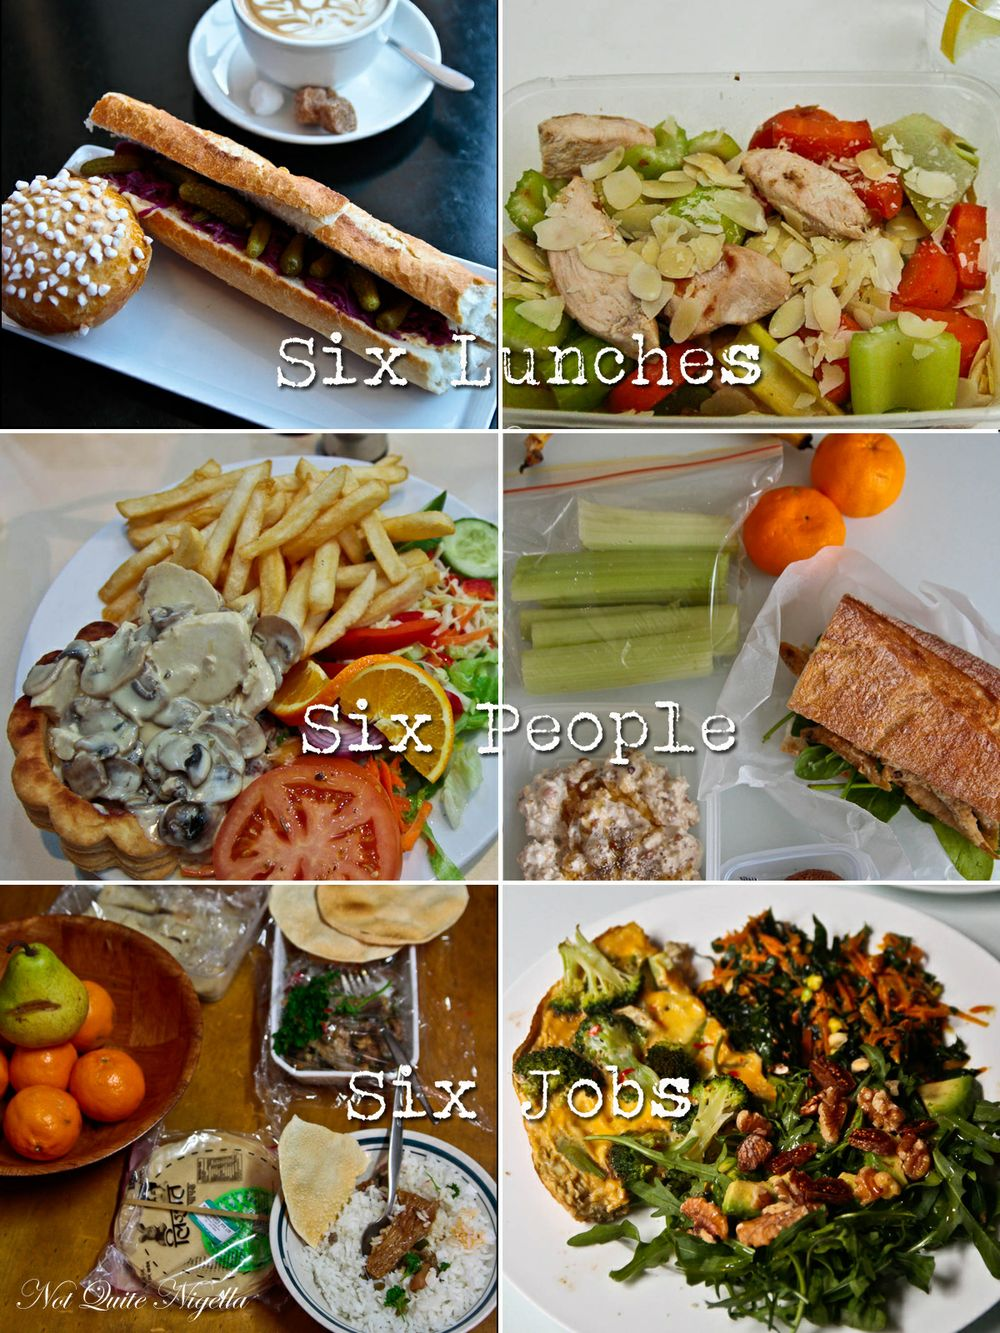 Six Lunches, Six People: What Do You Eat For Lunch? @ Not